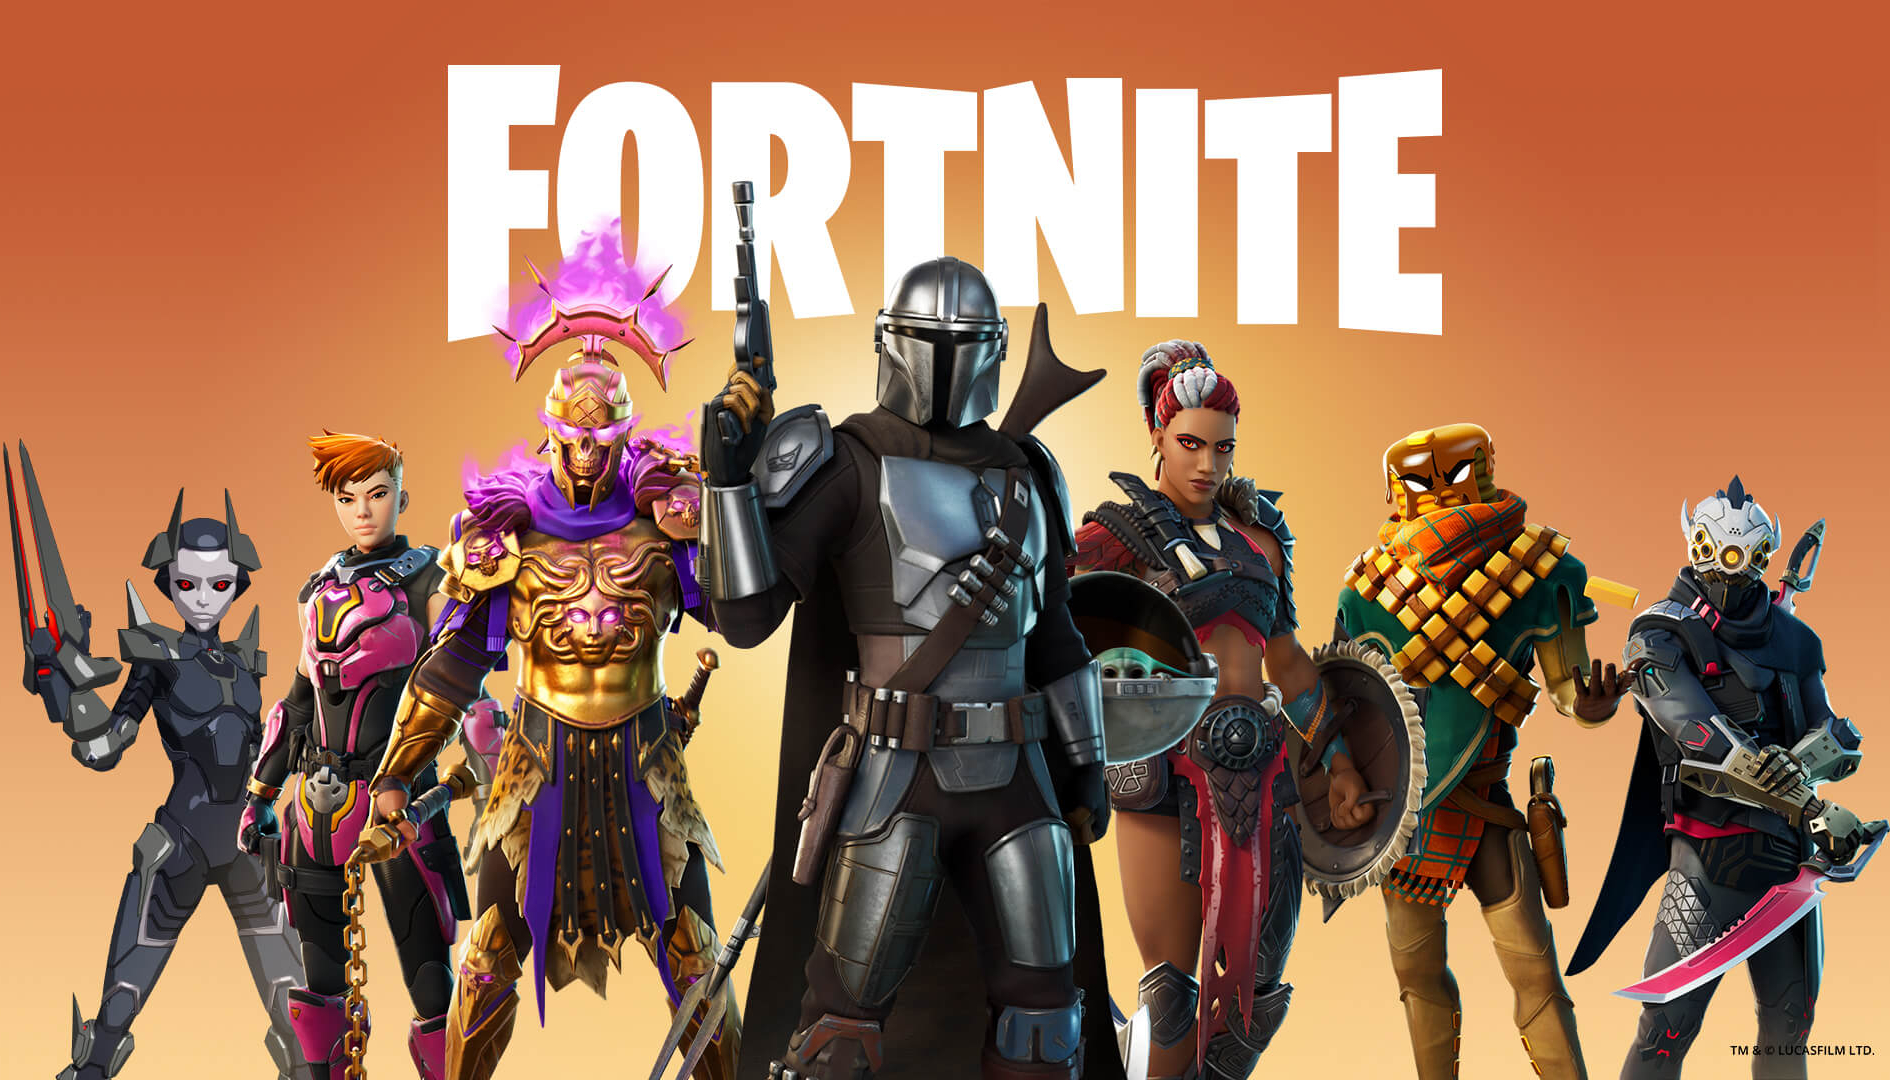 Fortnite: dopo Kratos e Master Chief in arrivo Lara Croft?